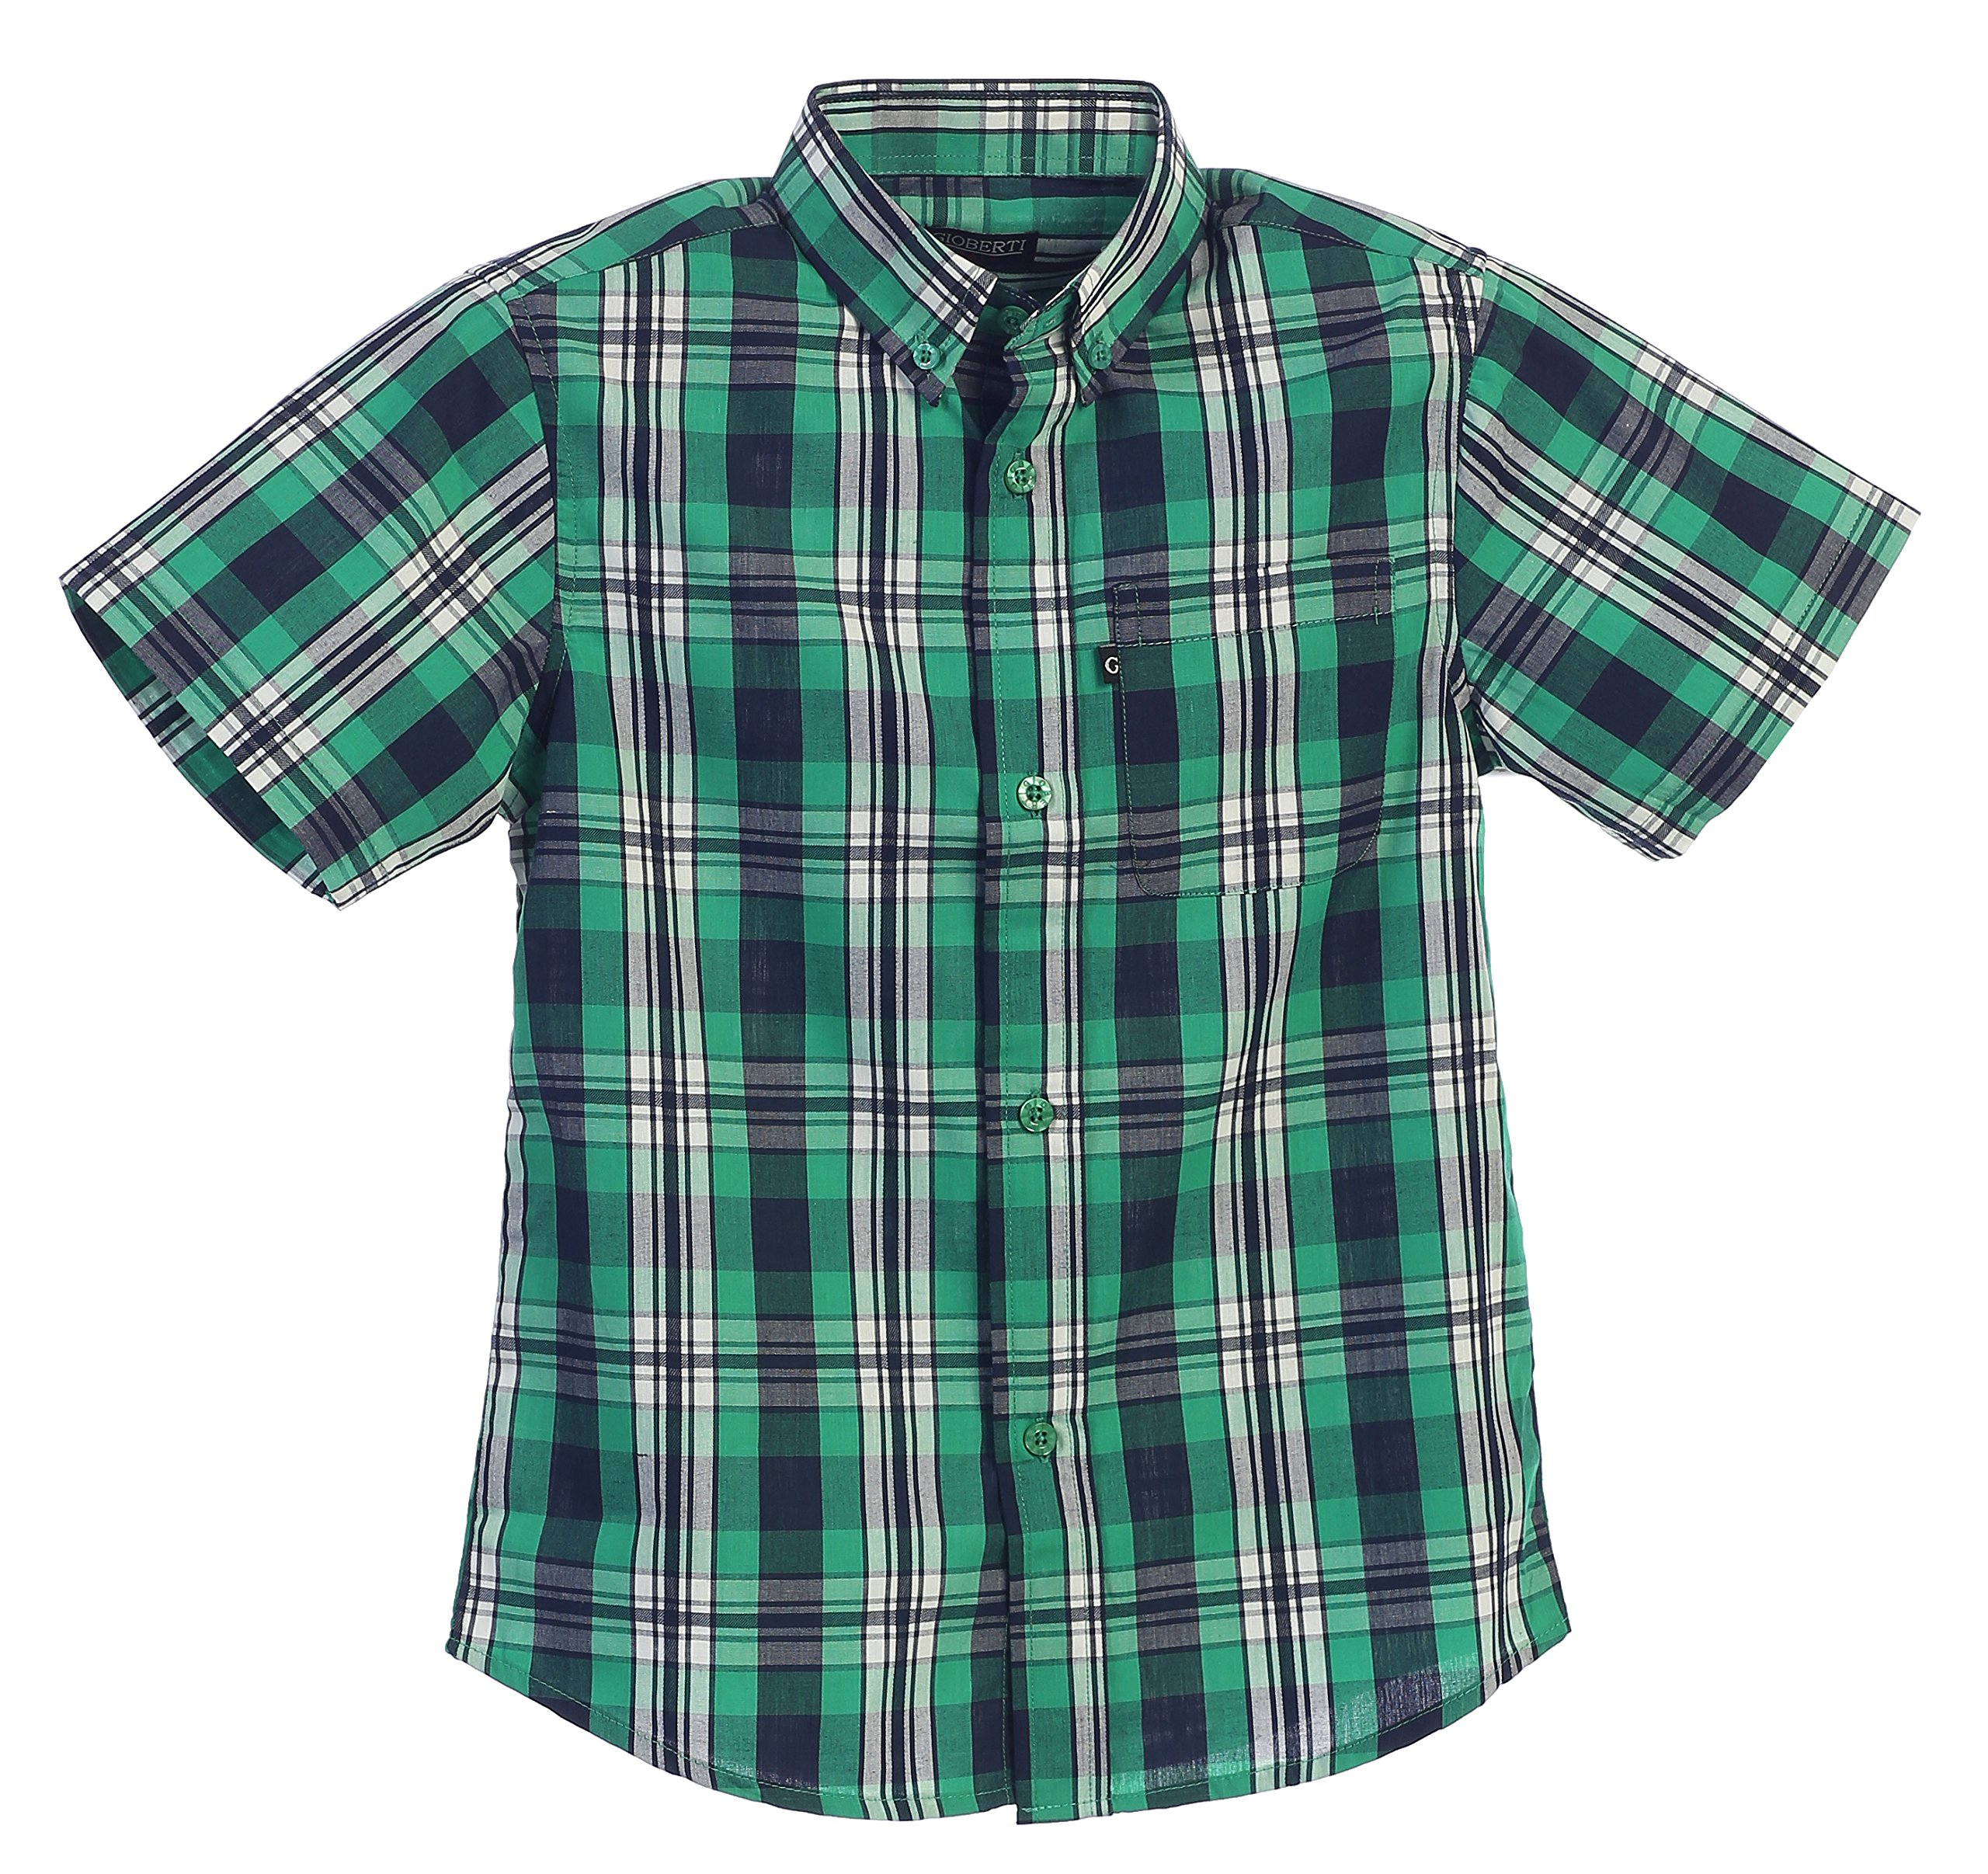 Gioberti Little Boys Plaid Short Sleeve Shirt, Green/Black, Size 5 by Gioberti (Image #1)